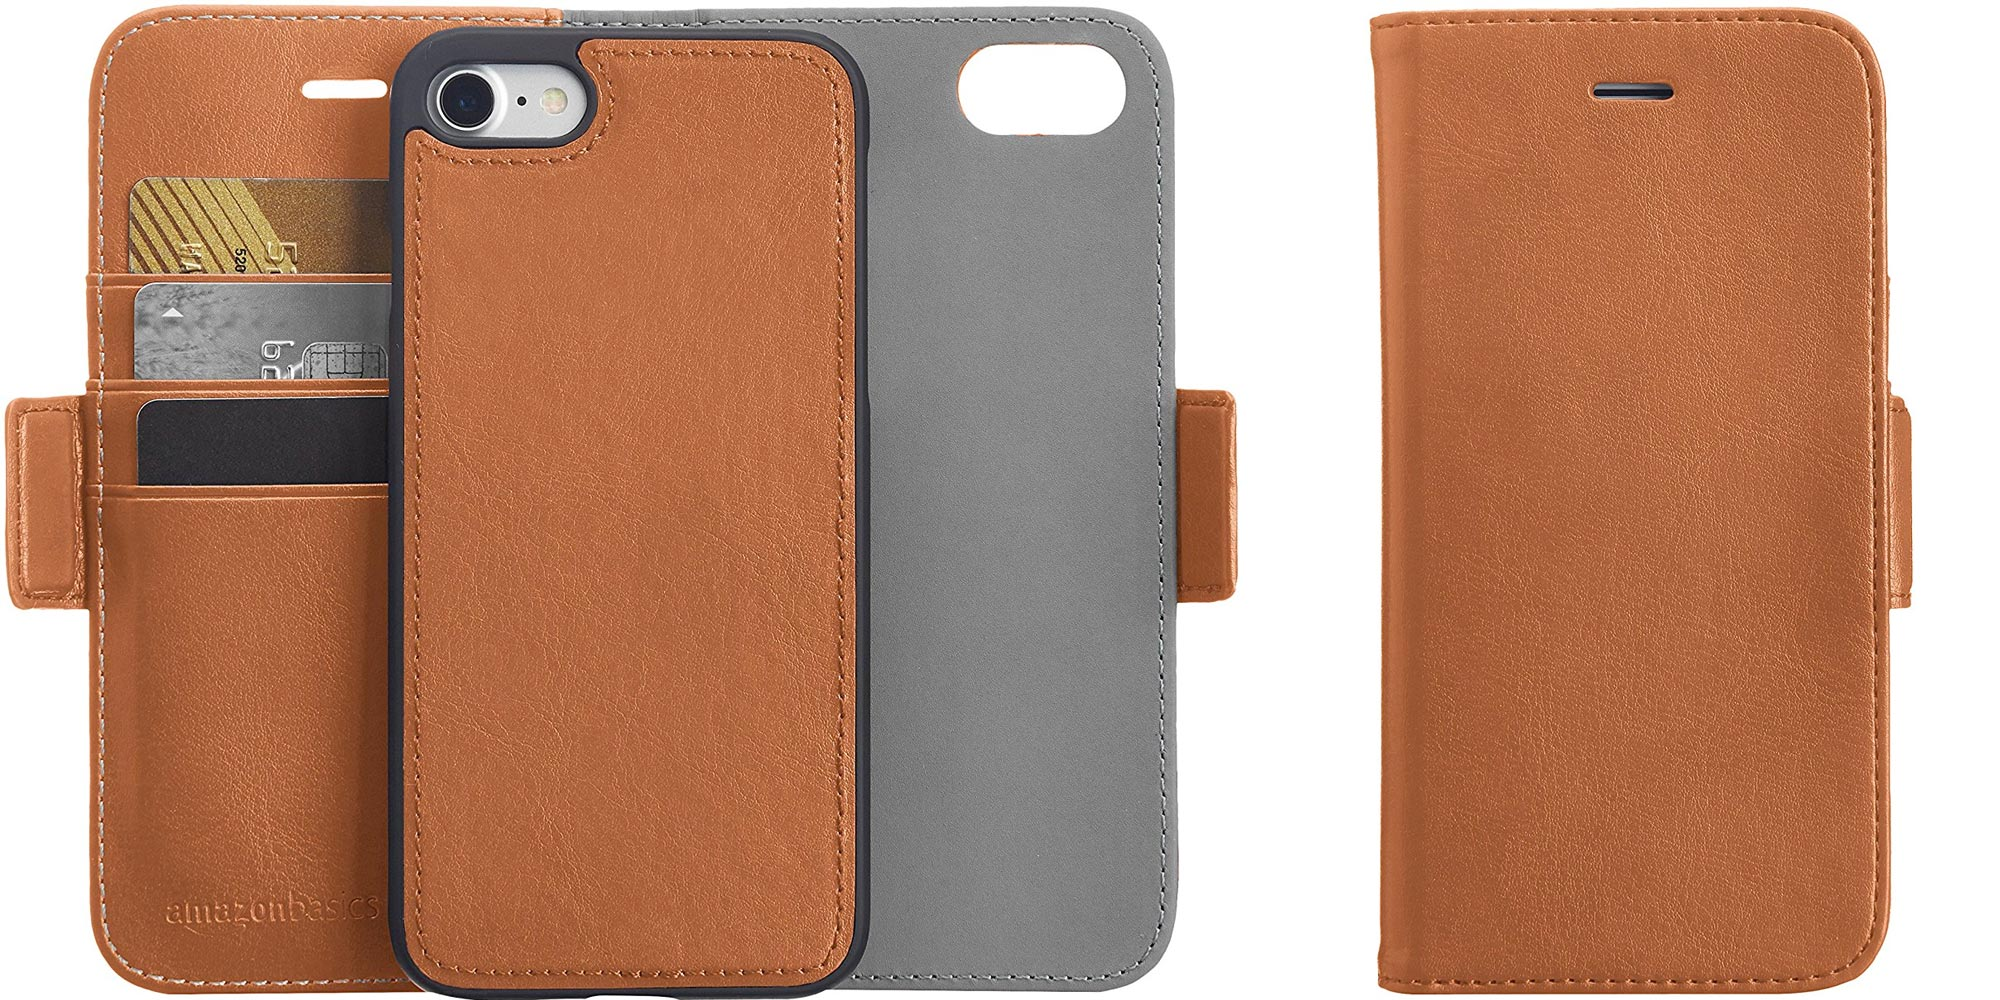 $2 can buy you a candy bar or this leather AmazonBasics iPhone 8/7 ...